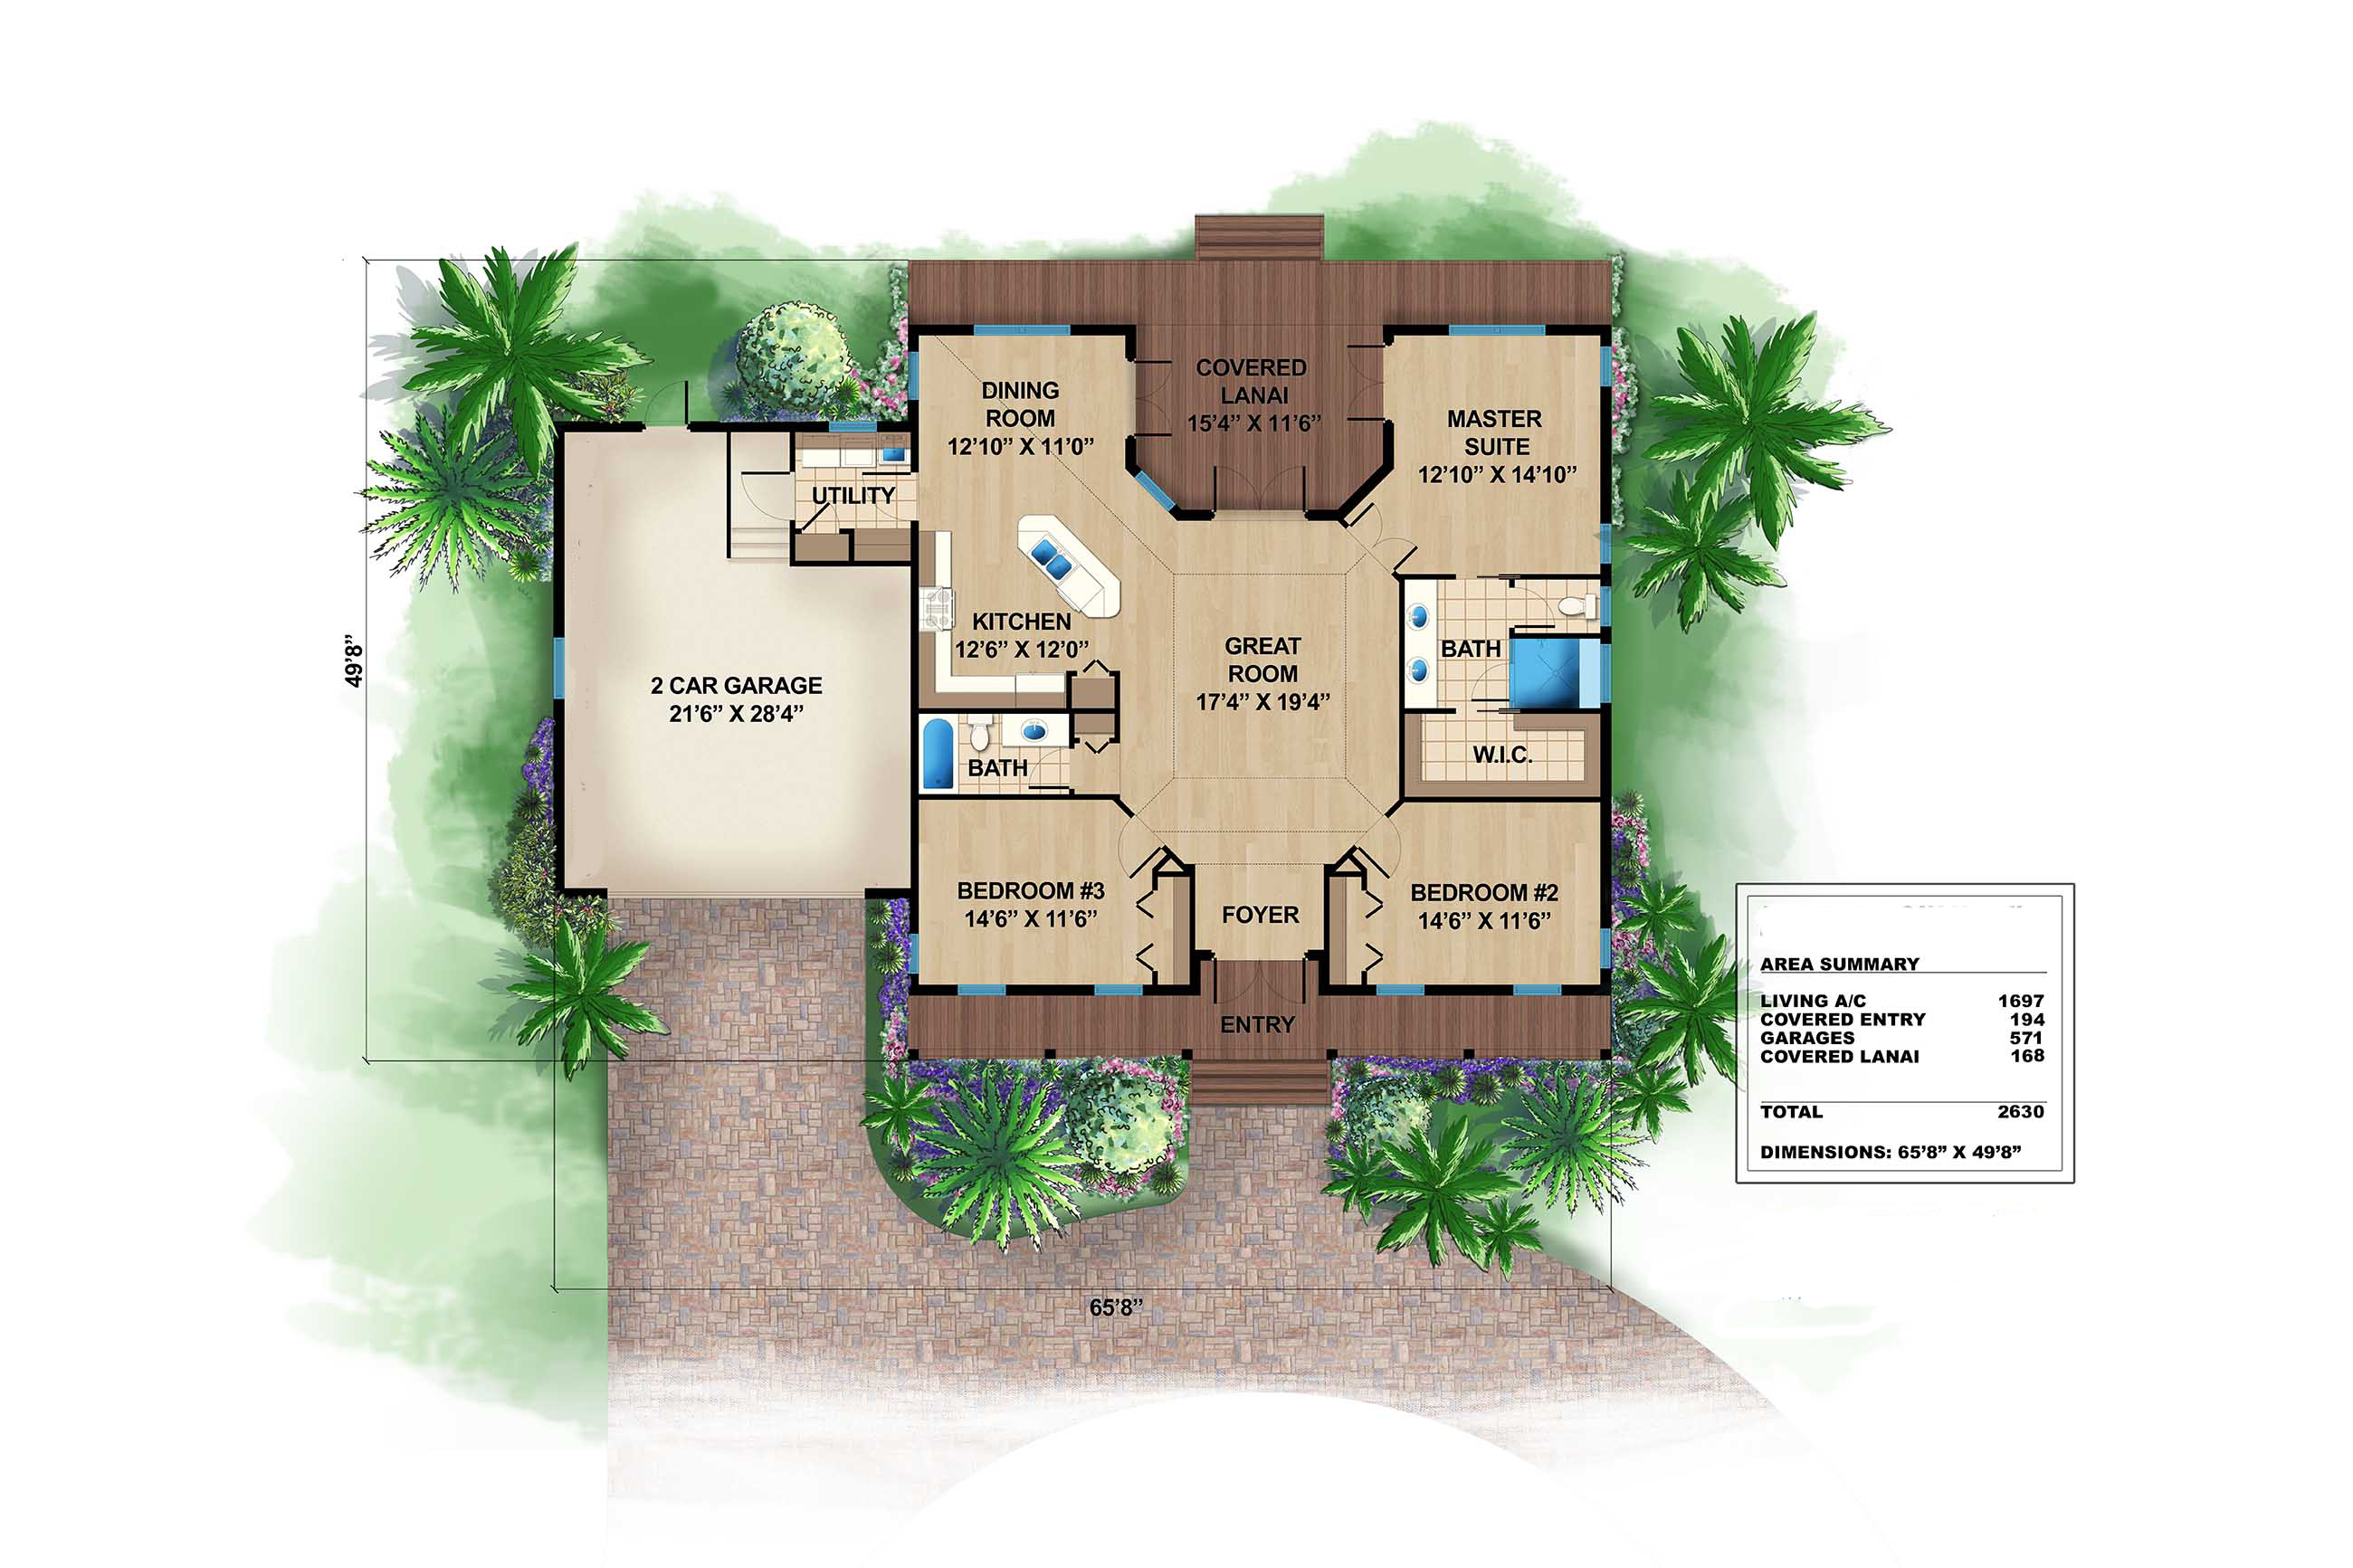 Southern ranch house plan 175 1108 3 bedrm 1697 sq ft for Caribbean home plans